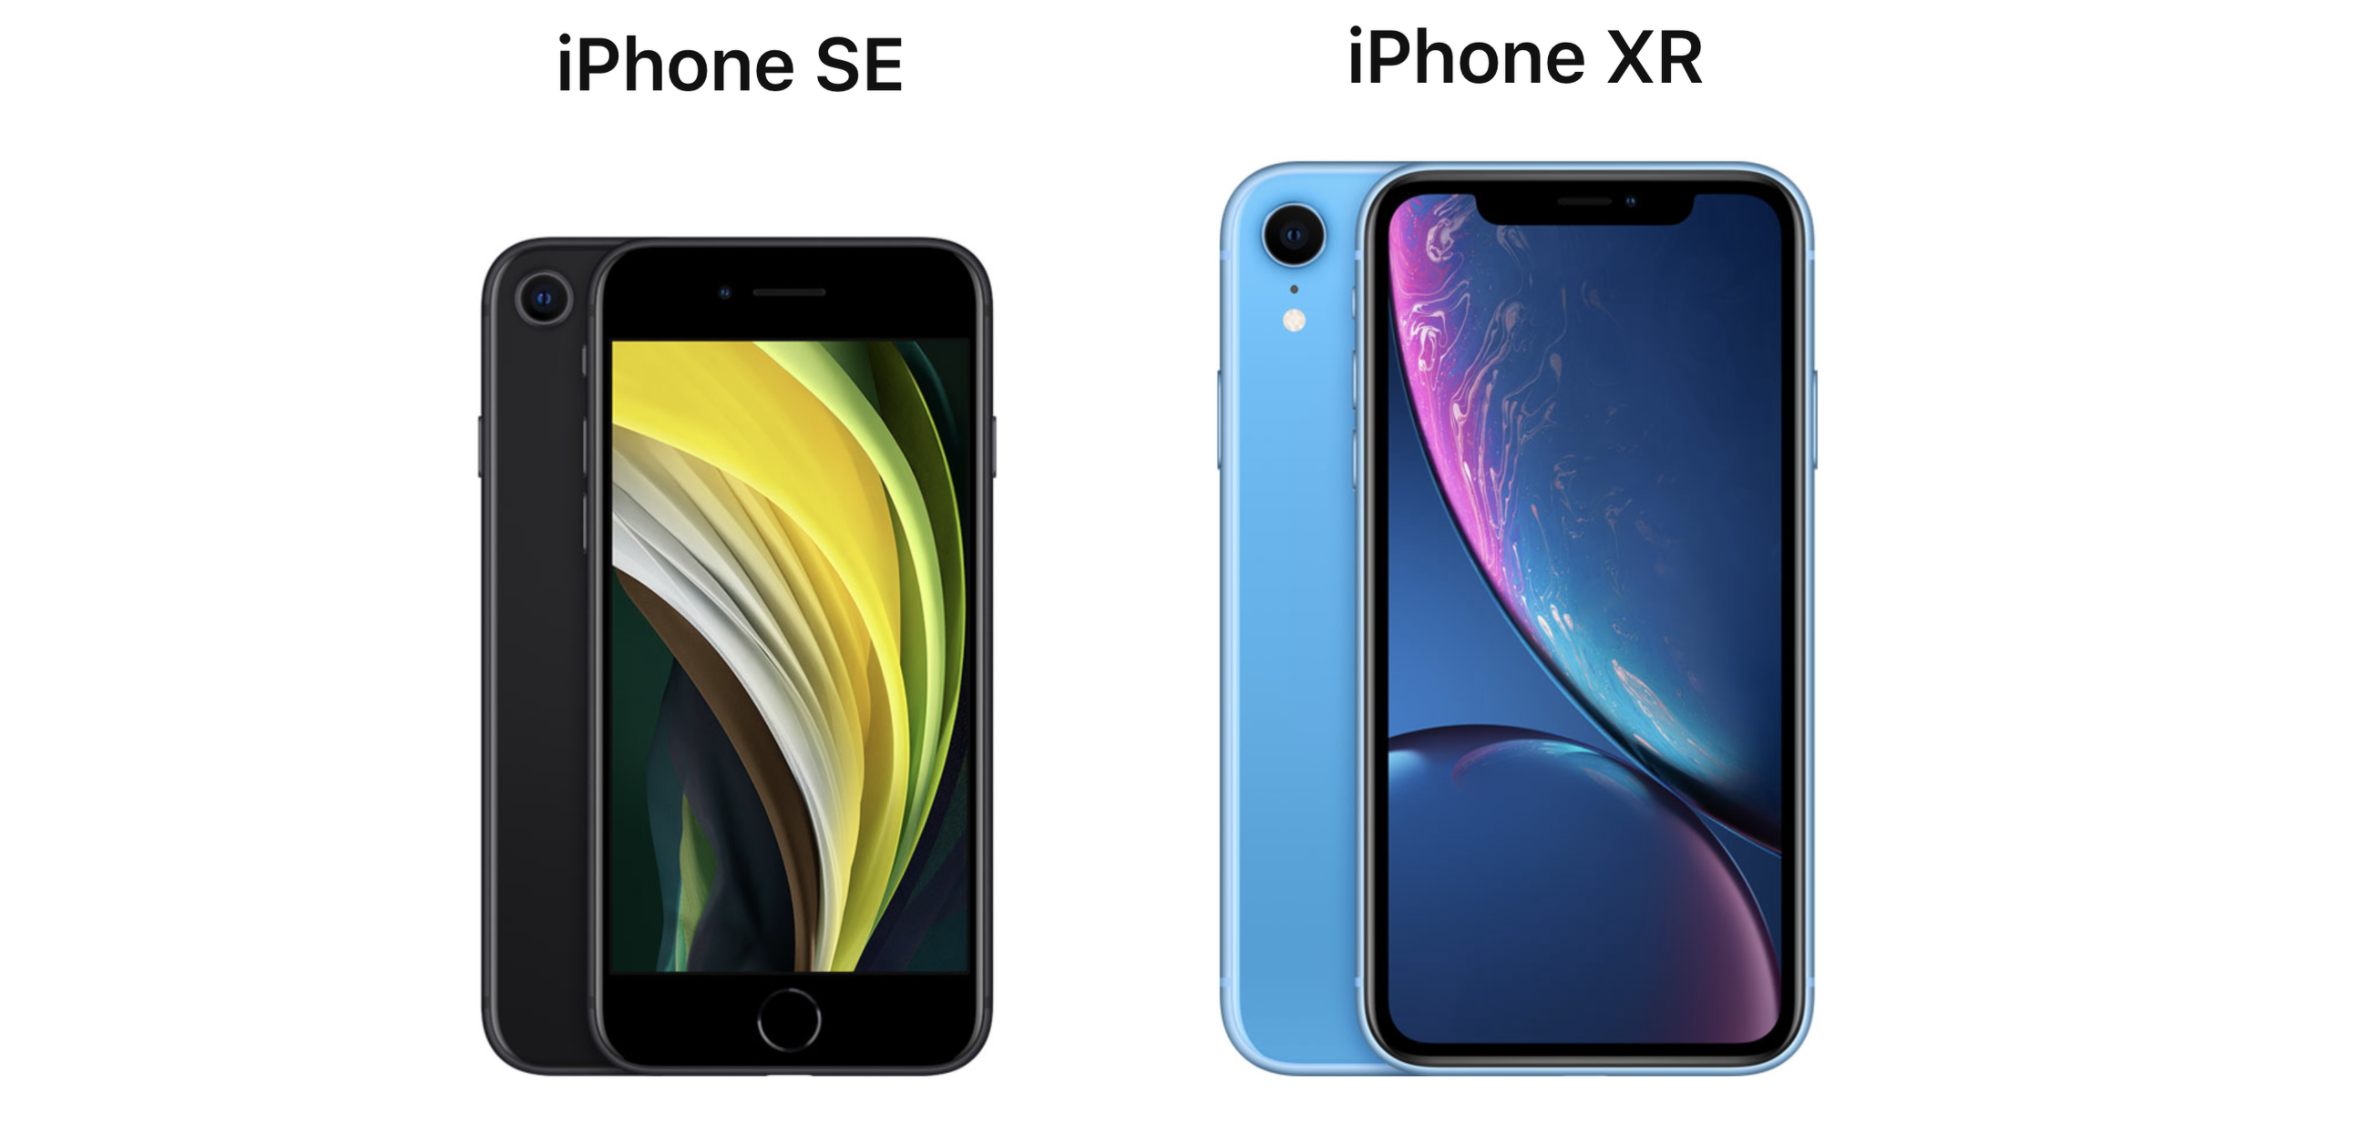 iPhone SE vs. iPhone XR: Features Compared